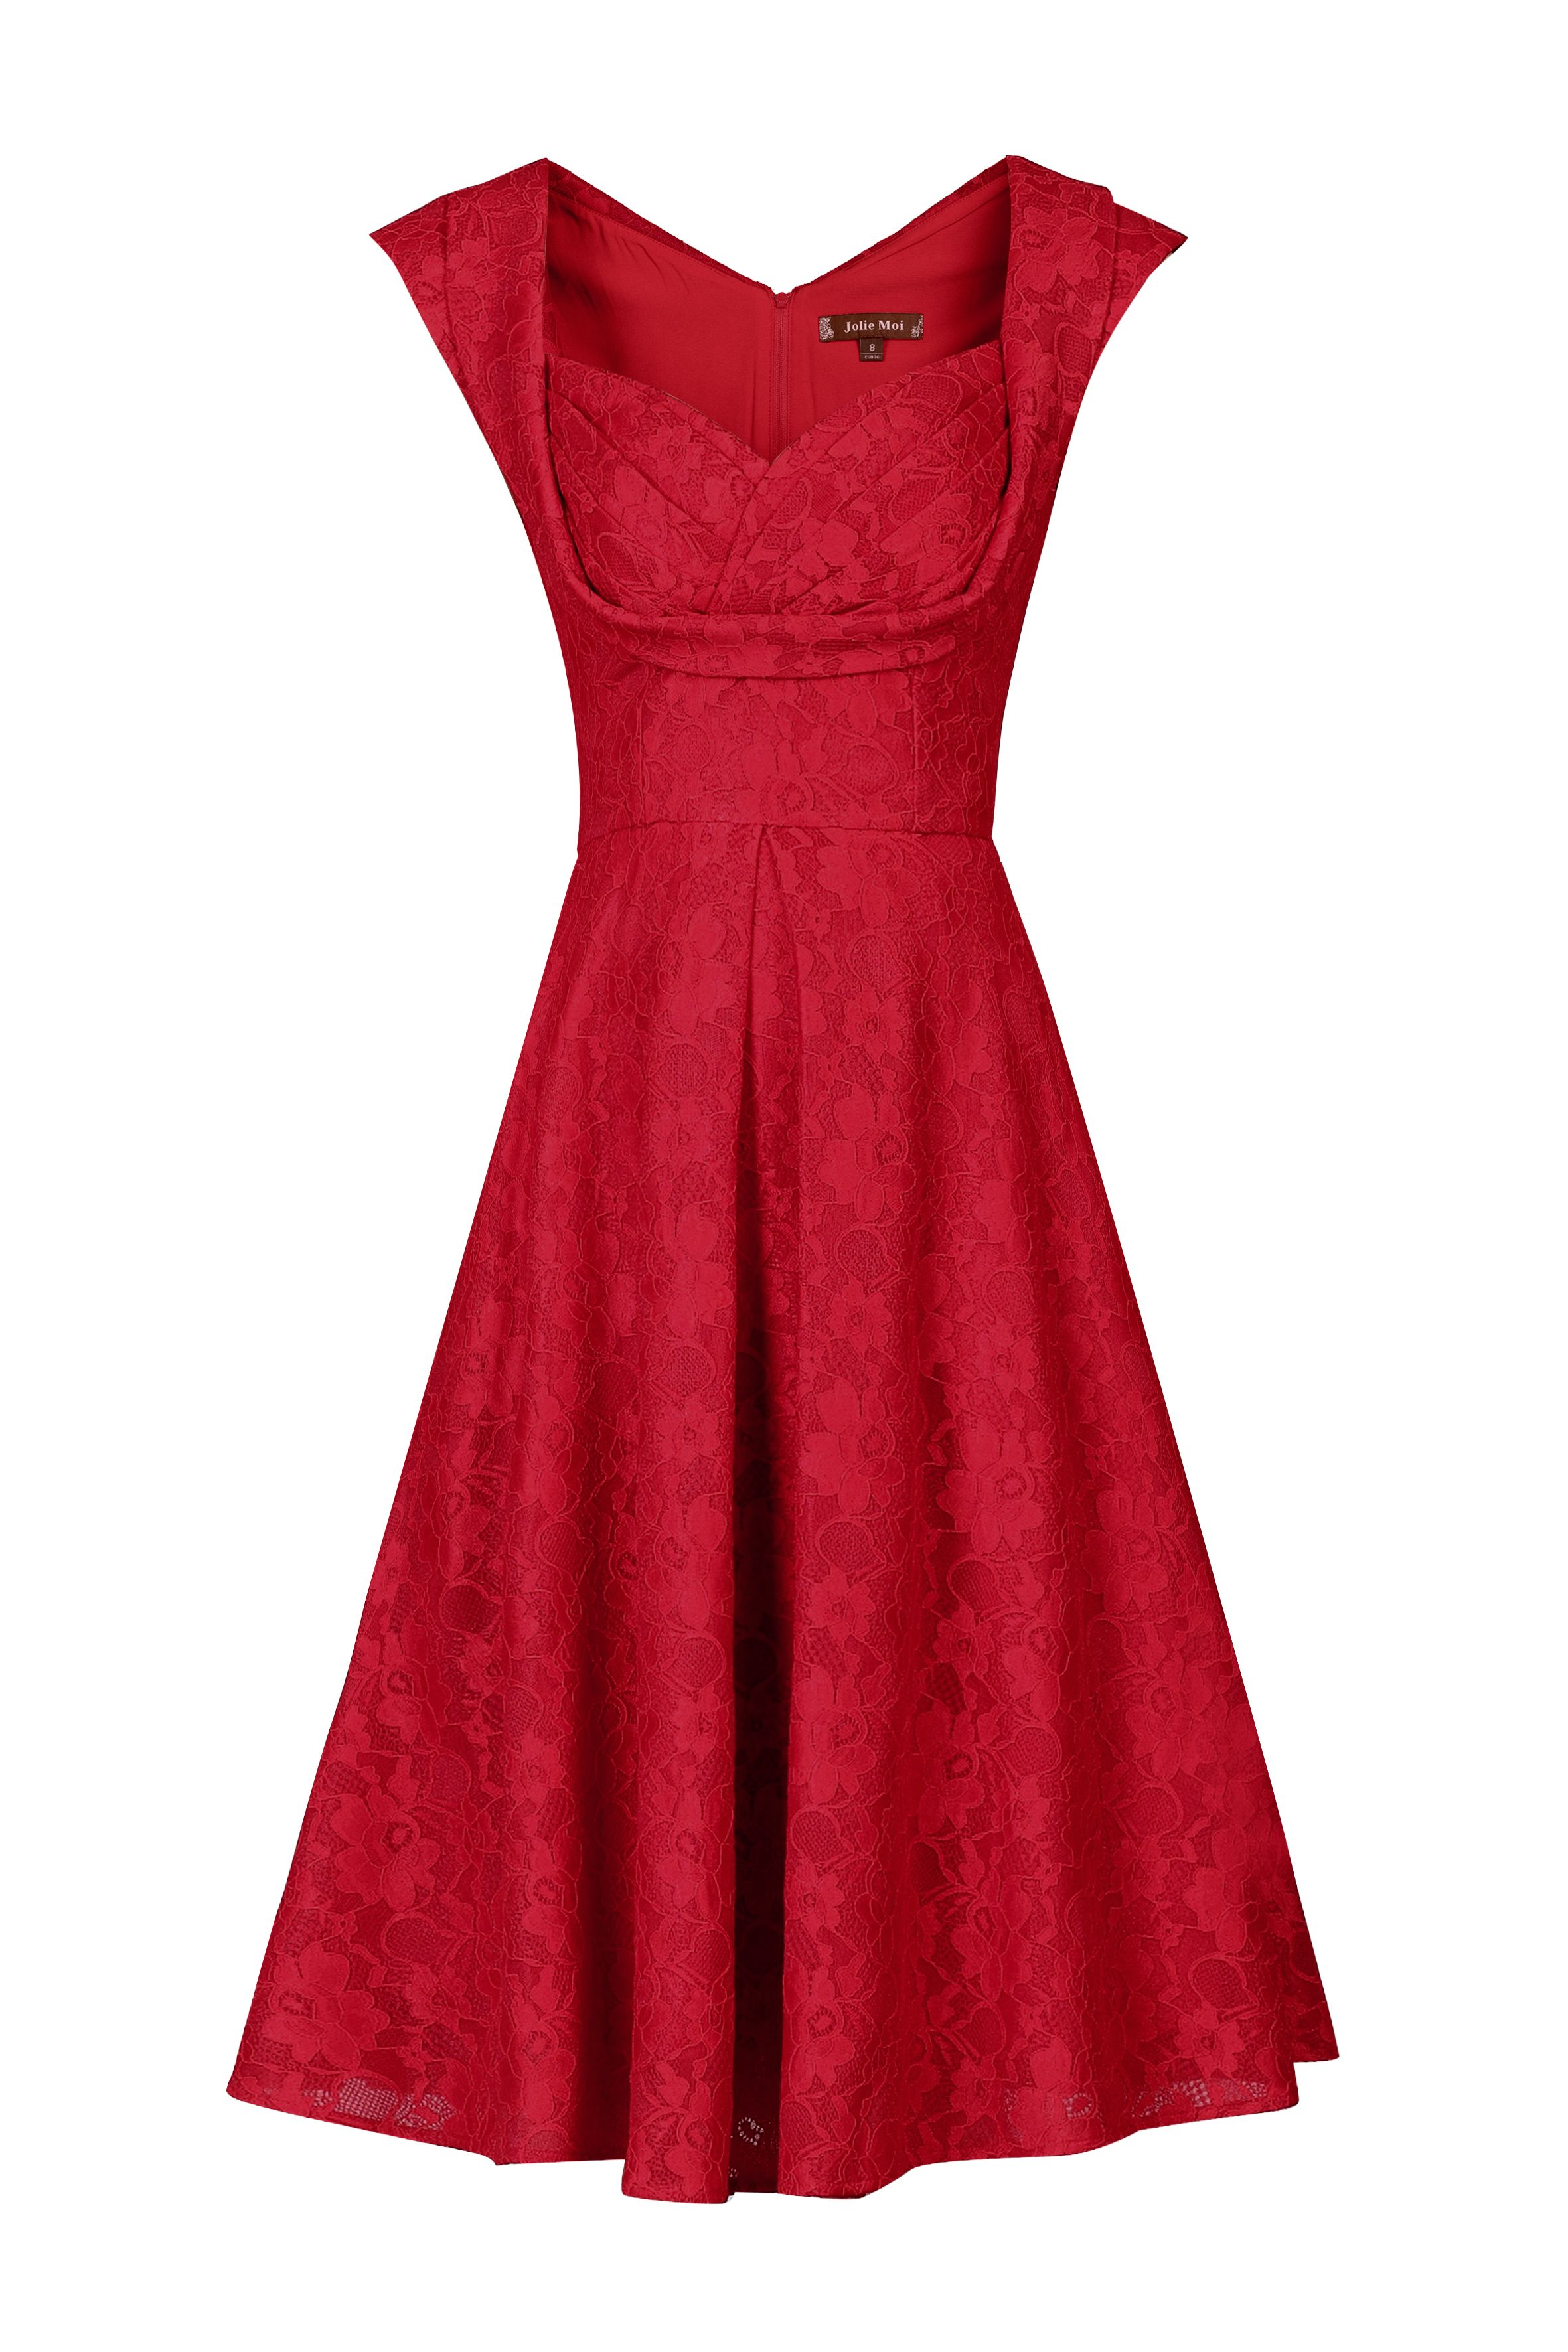 Jolie Moi Crossover Bust Lace Prom Dress, Red